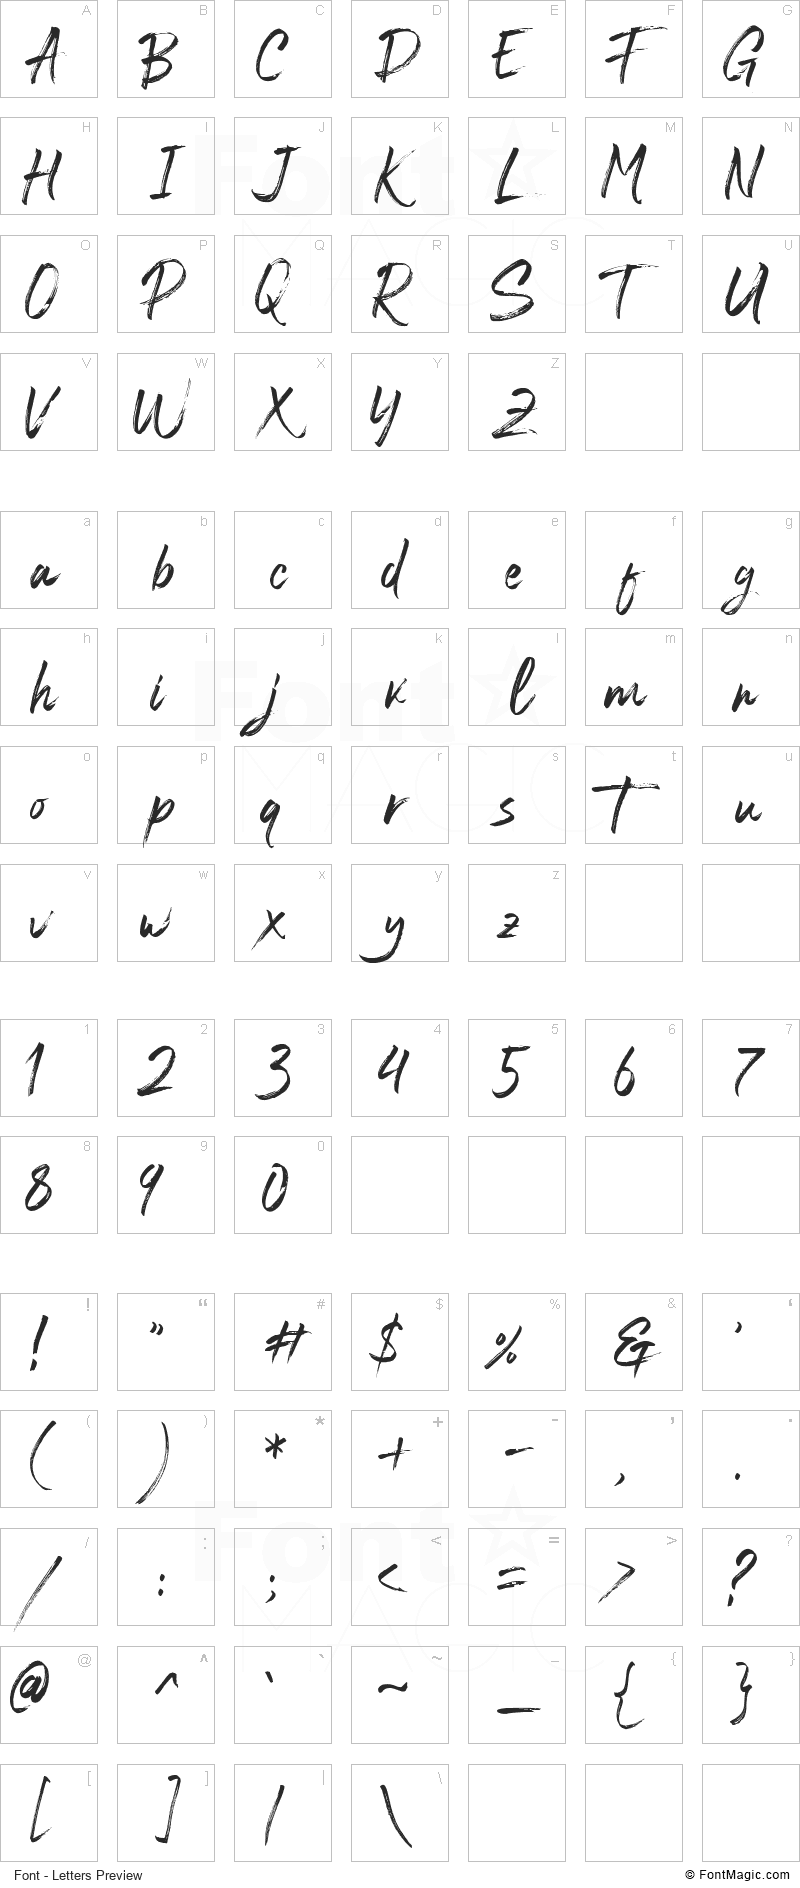 Blastimo Font - All Latters Preview Chart